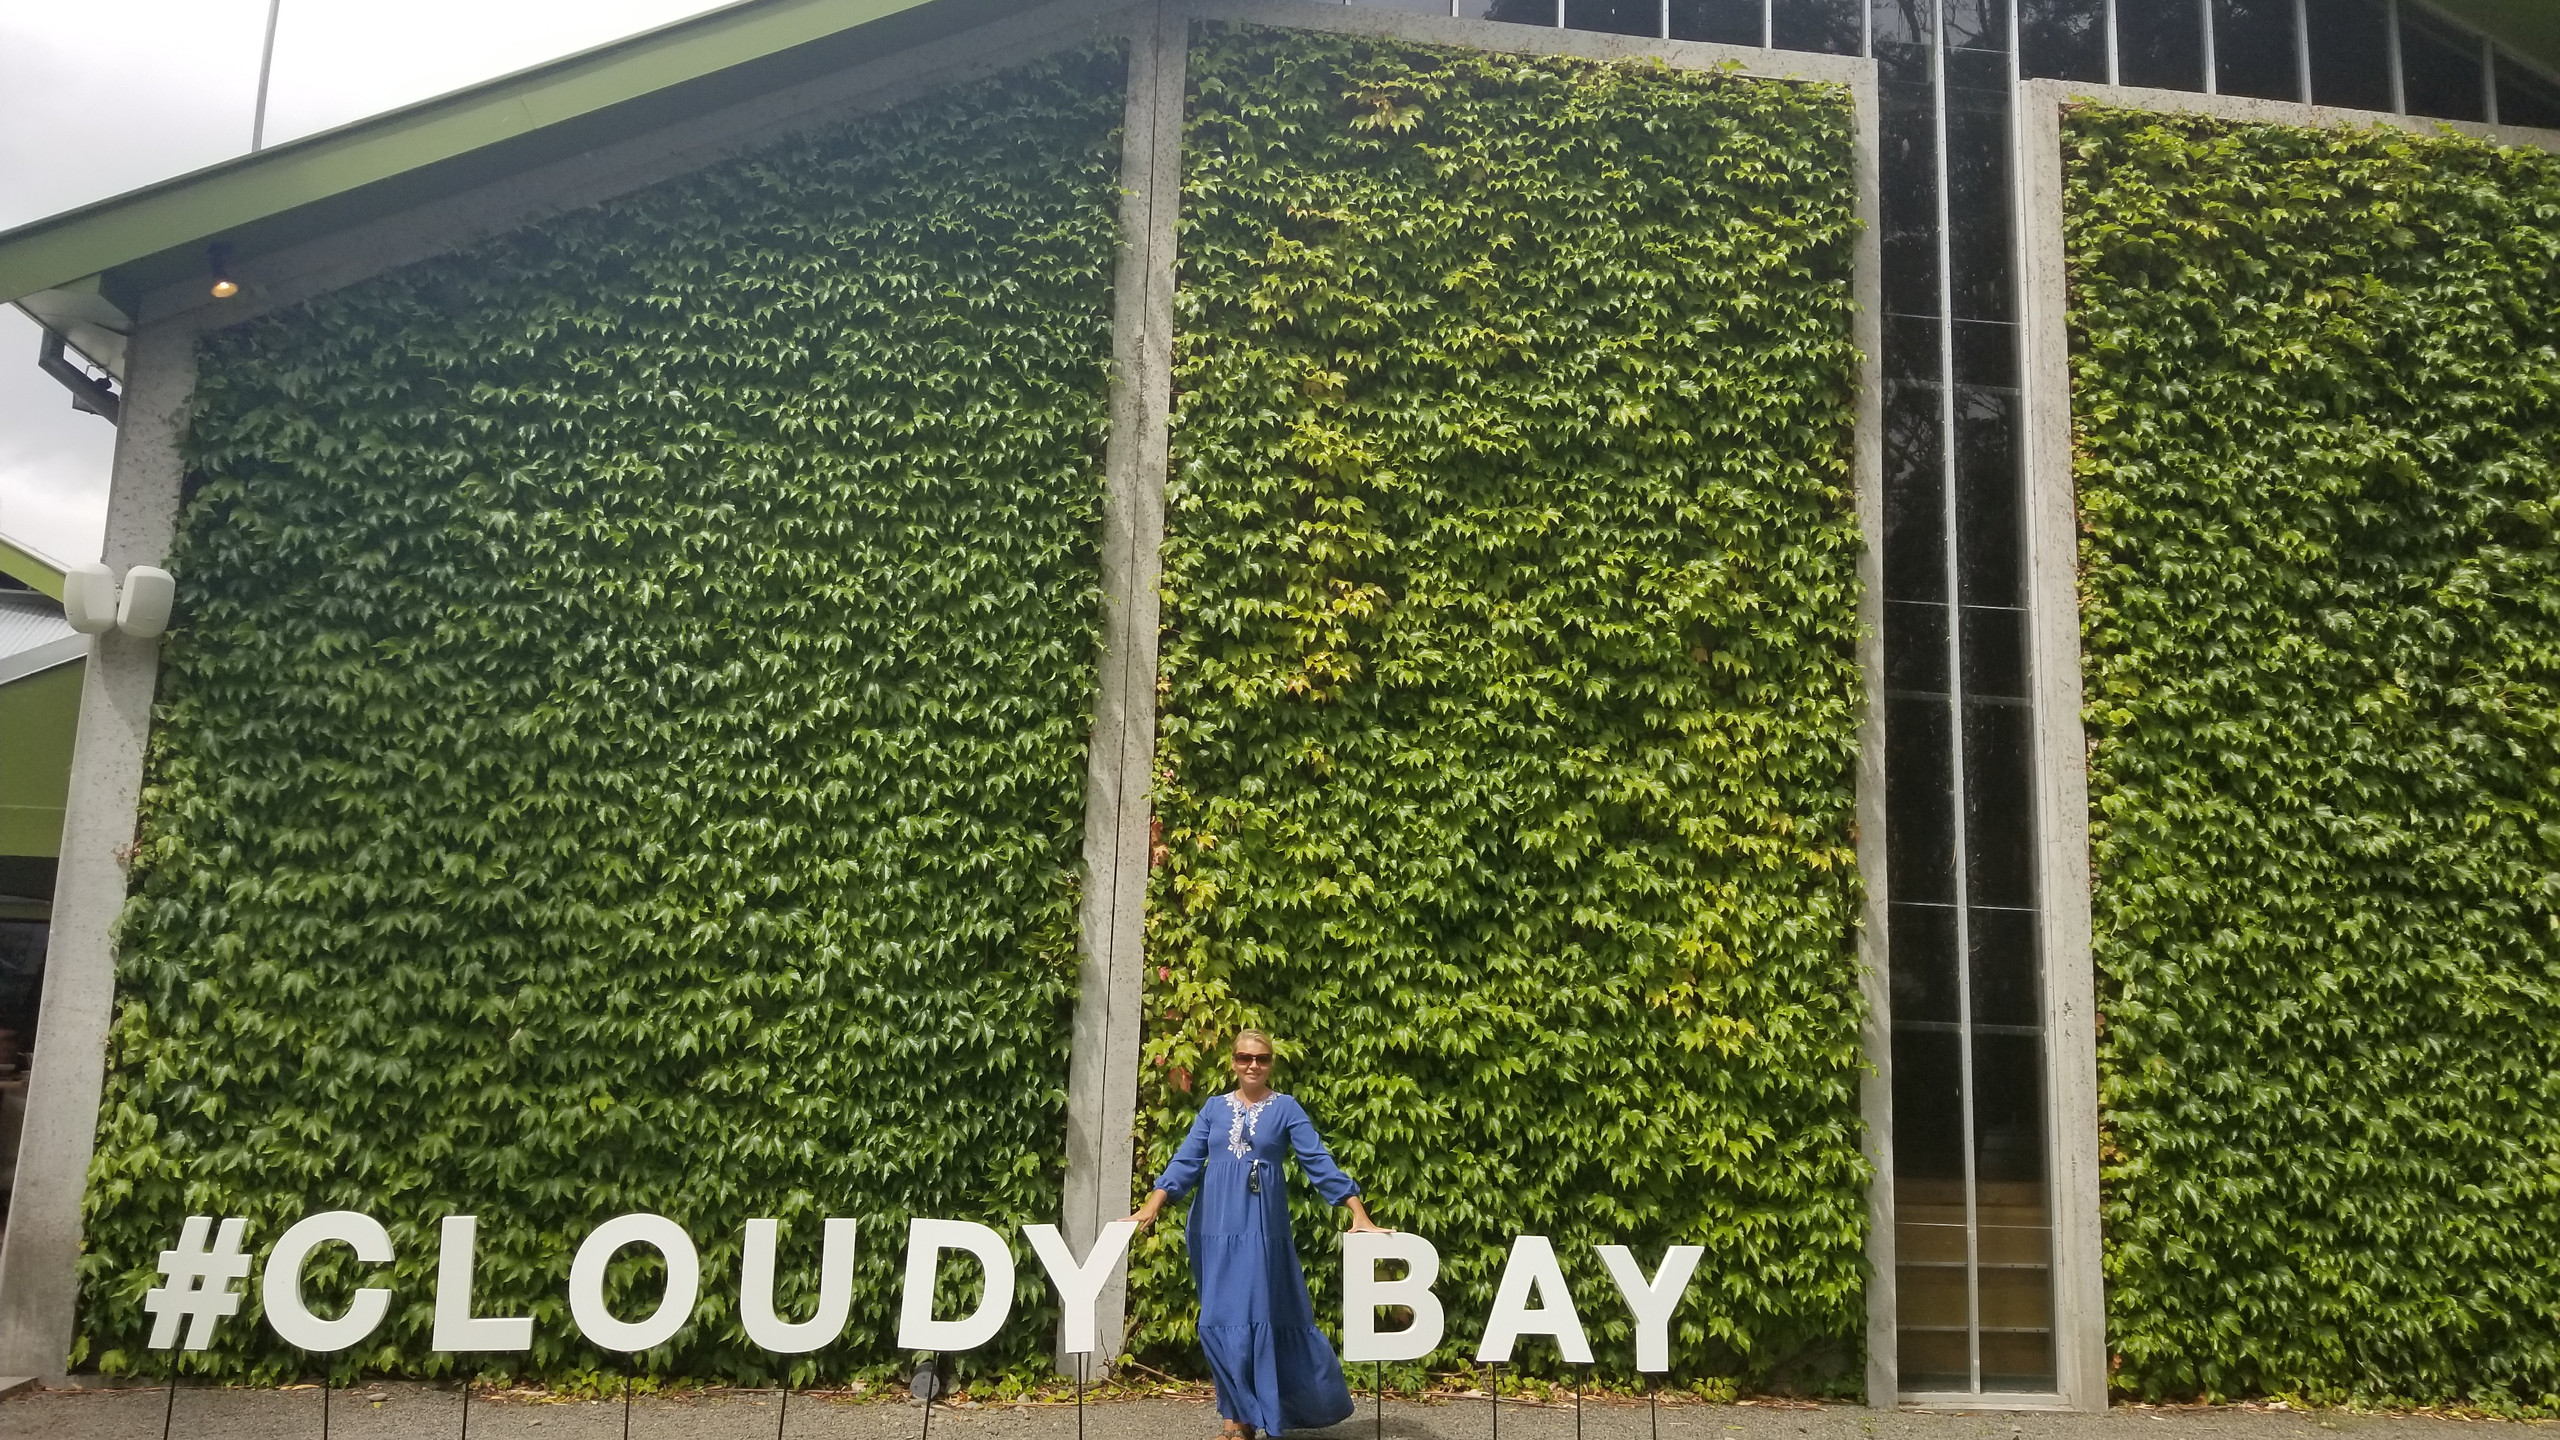 Cloudy Bay winery, Marlborough, New Zealand travel blog